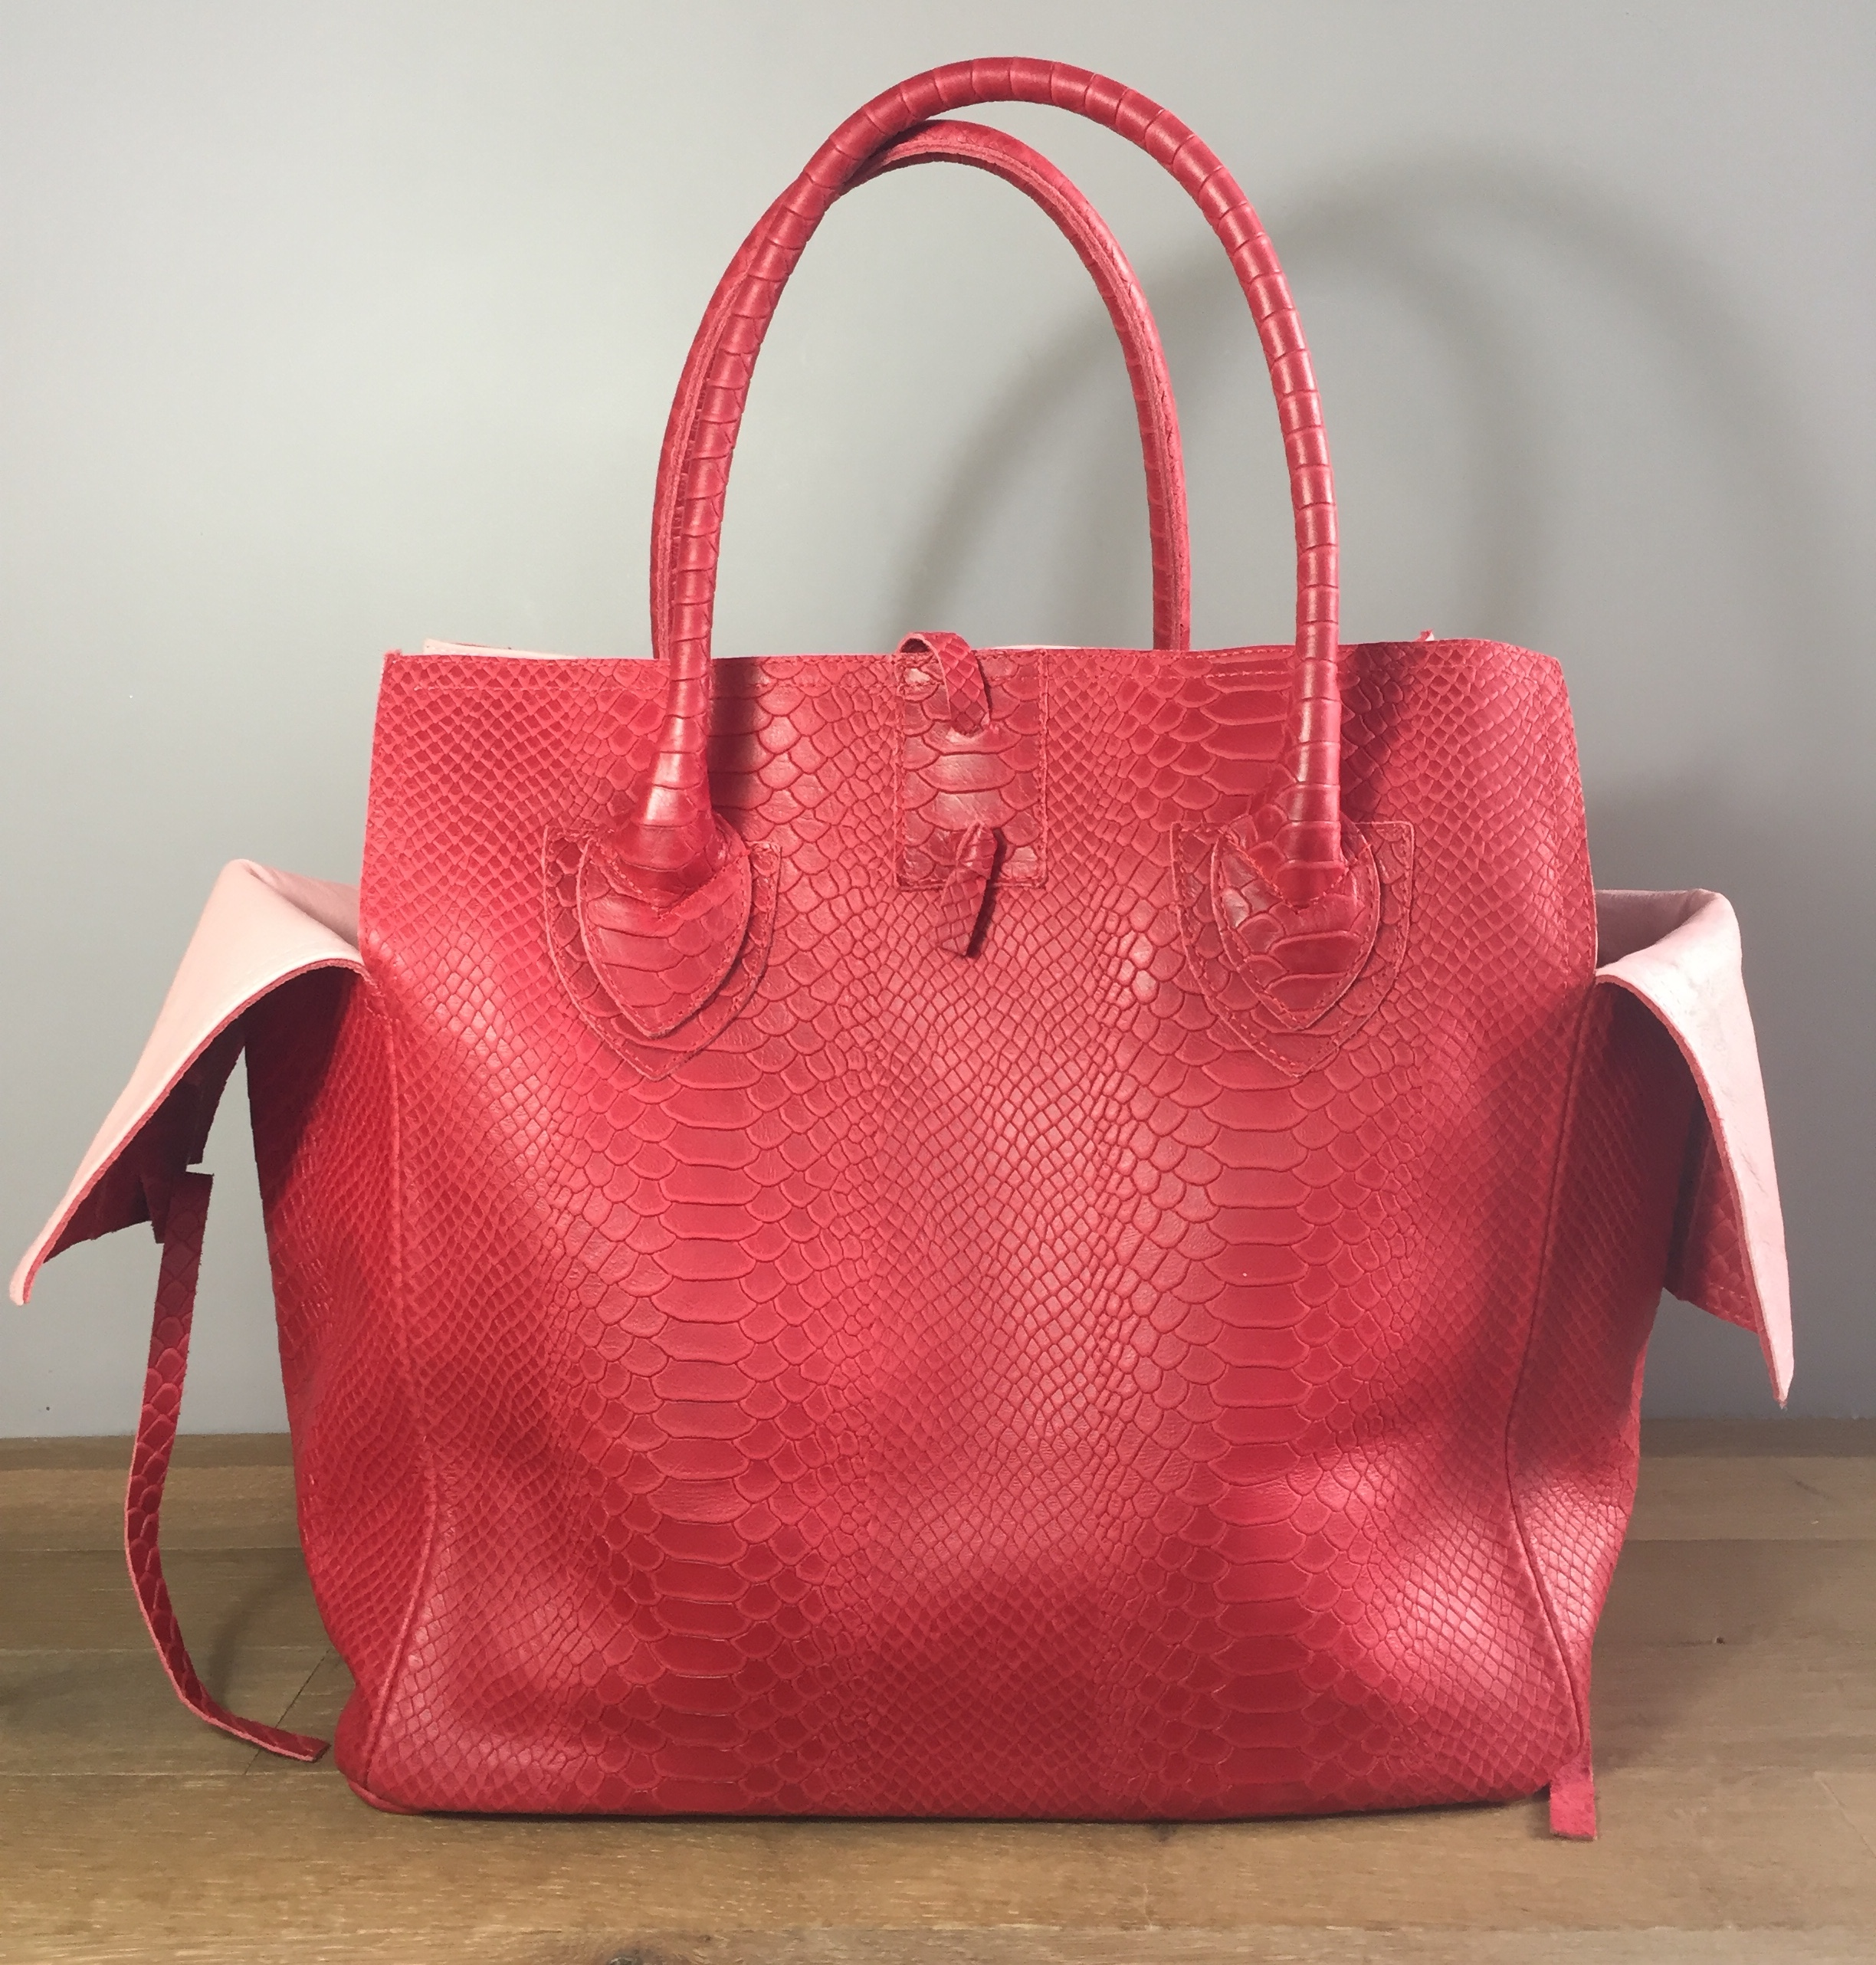 5eabe7aeb4 all bags are 100% genuine leather